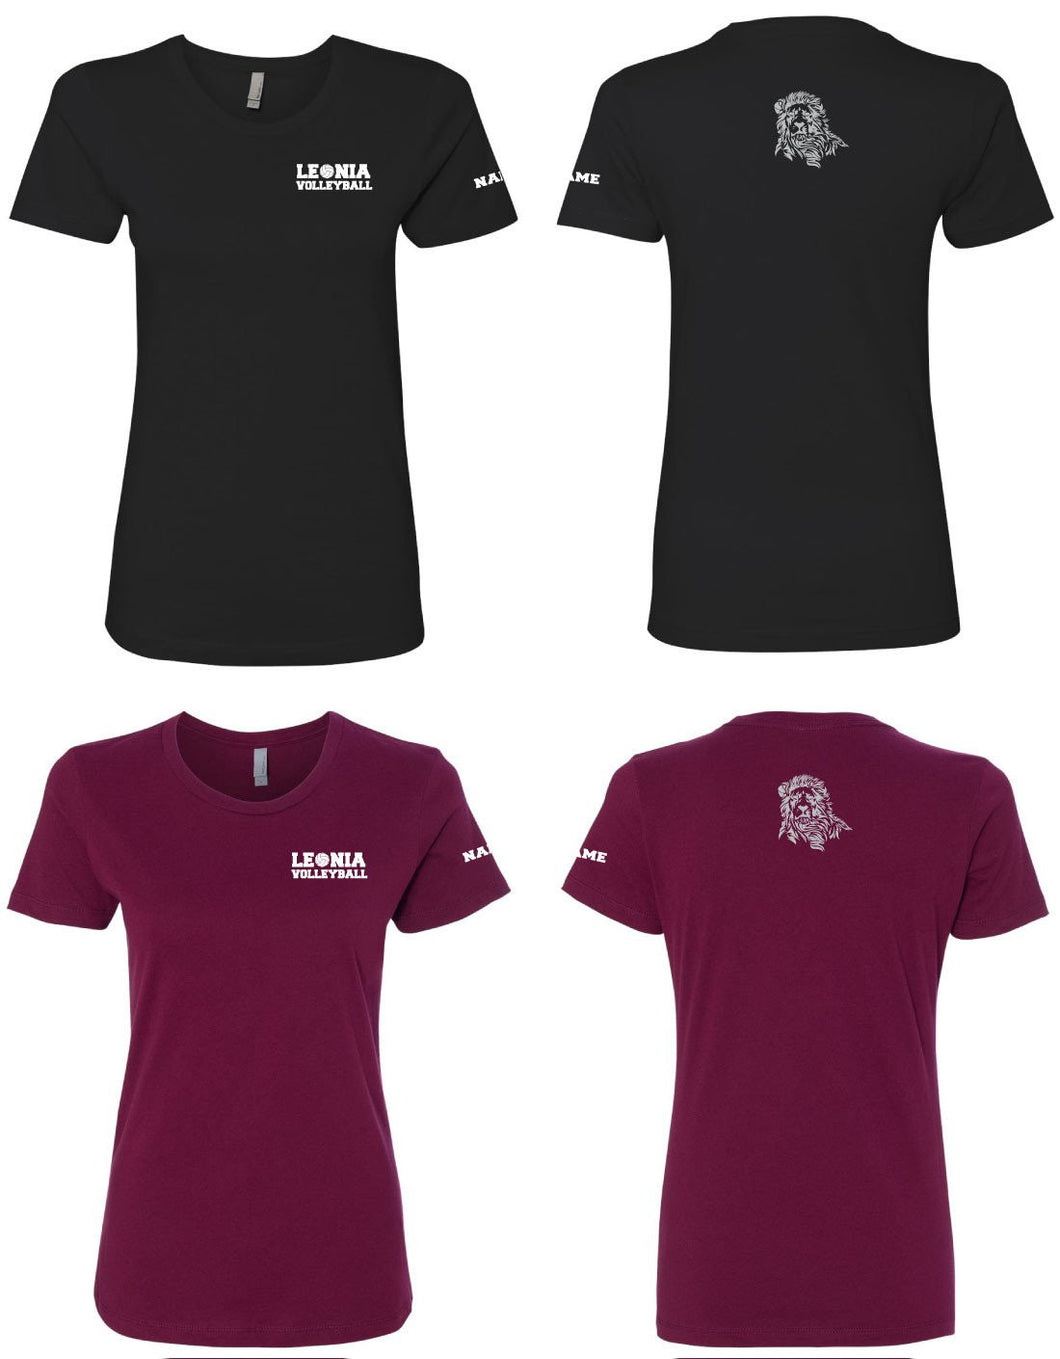 Leonia Lady Lions Volleyball - Cotton Crew Tee